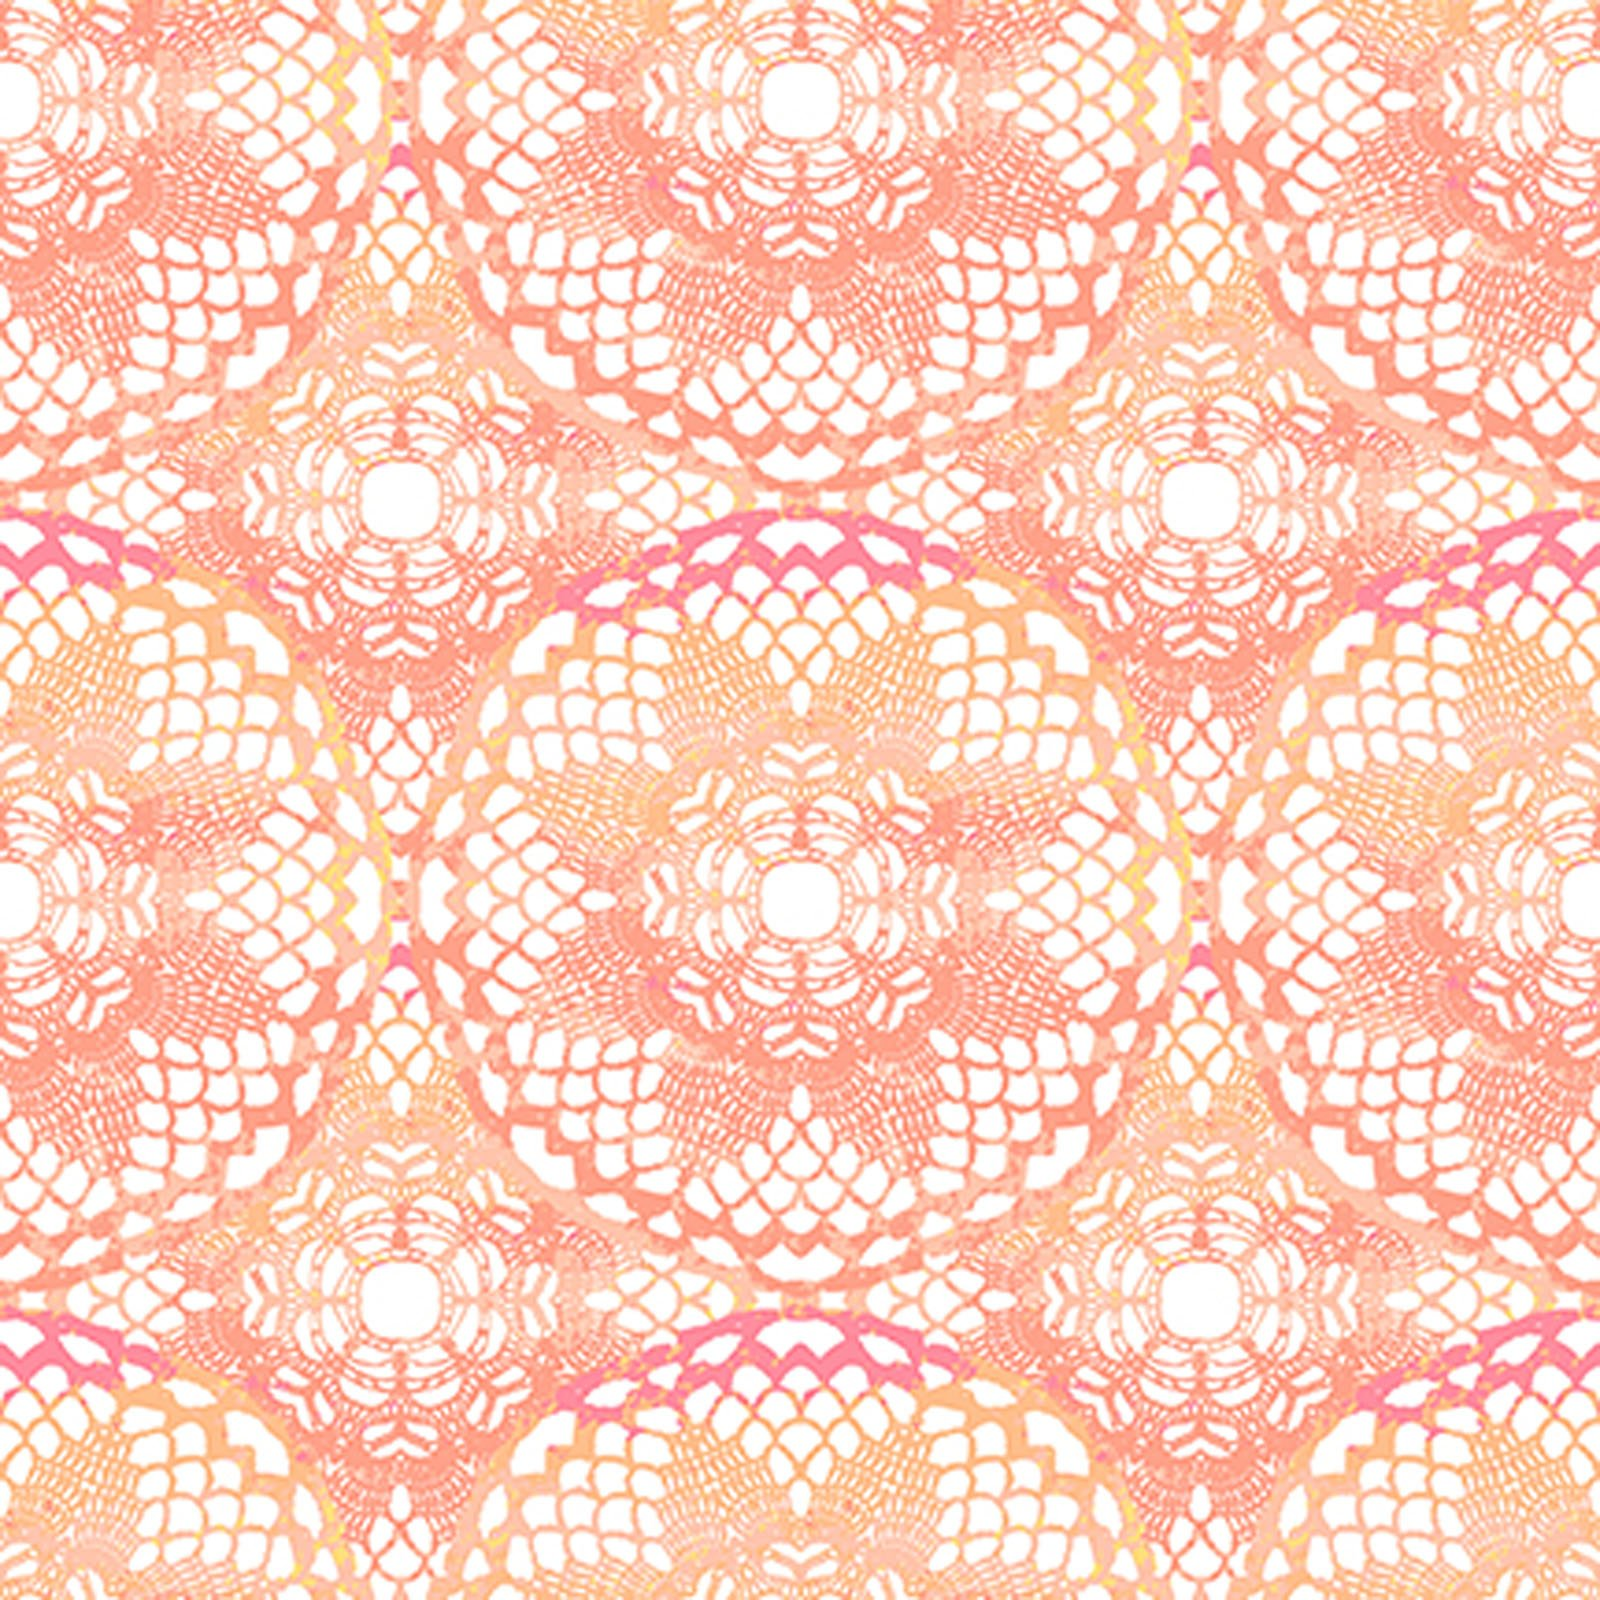 INTH-6PAT 1 - THE PATRICIA COLLECTION BY IN THE BEGINNING LACE CORAL- DELIVERY MARCH 2021